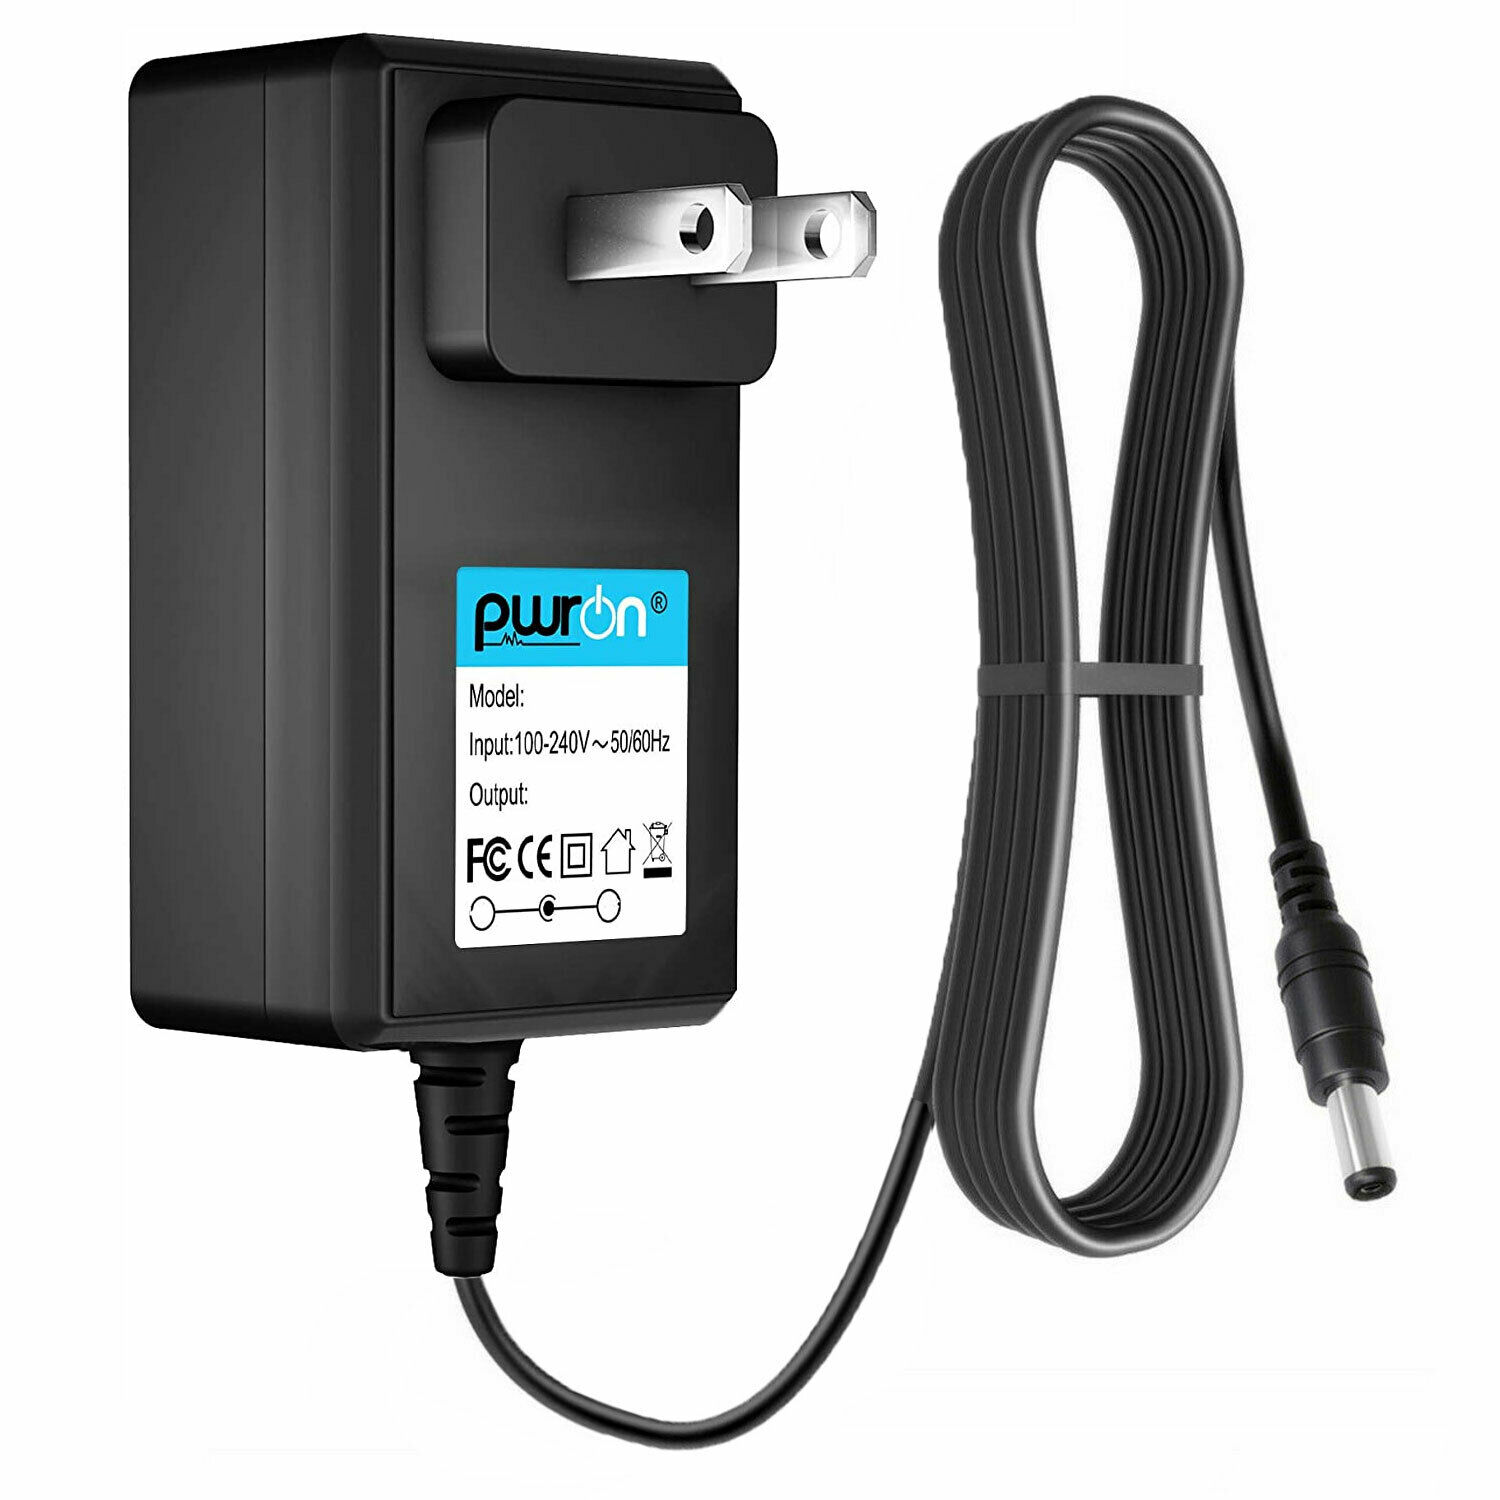 PwrON PSU 7.5V AC Adapter Charger For iHome U075180D43 Charger Switching Power